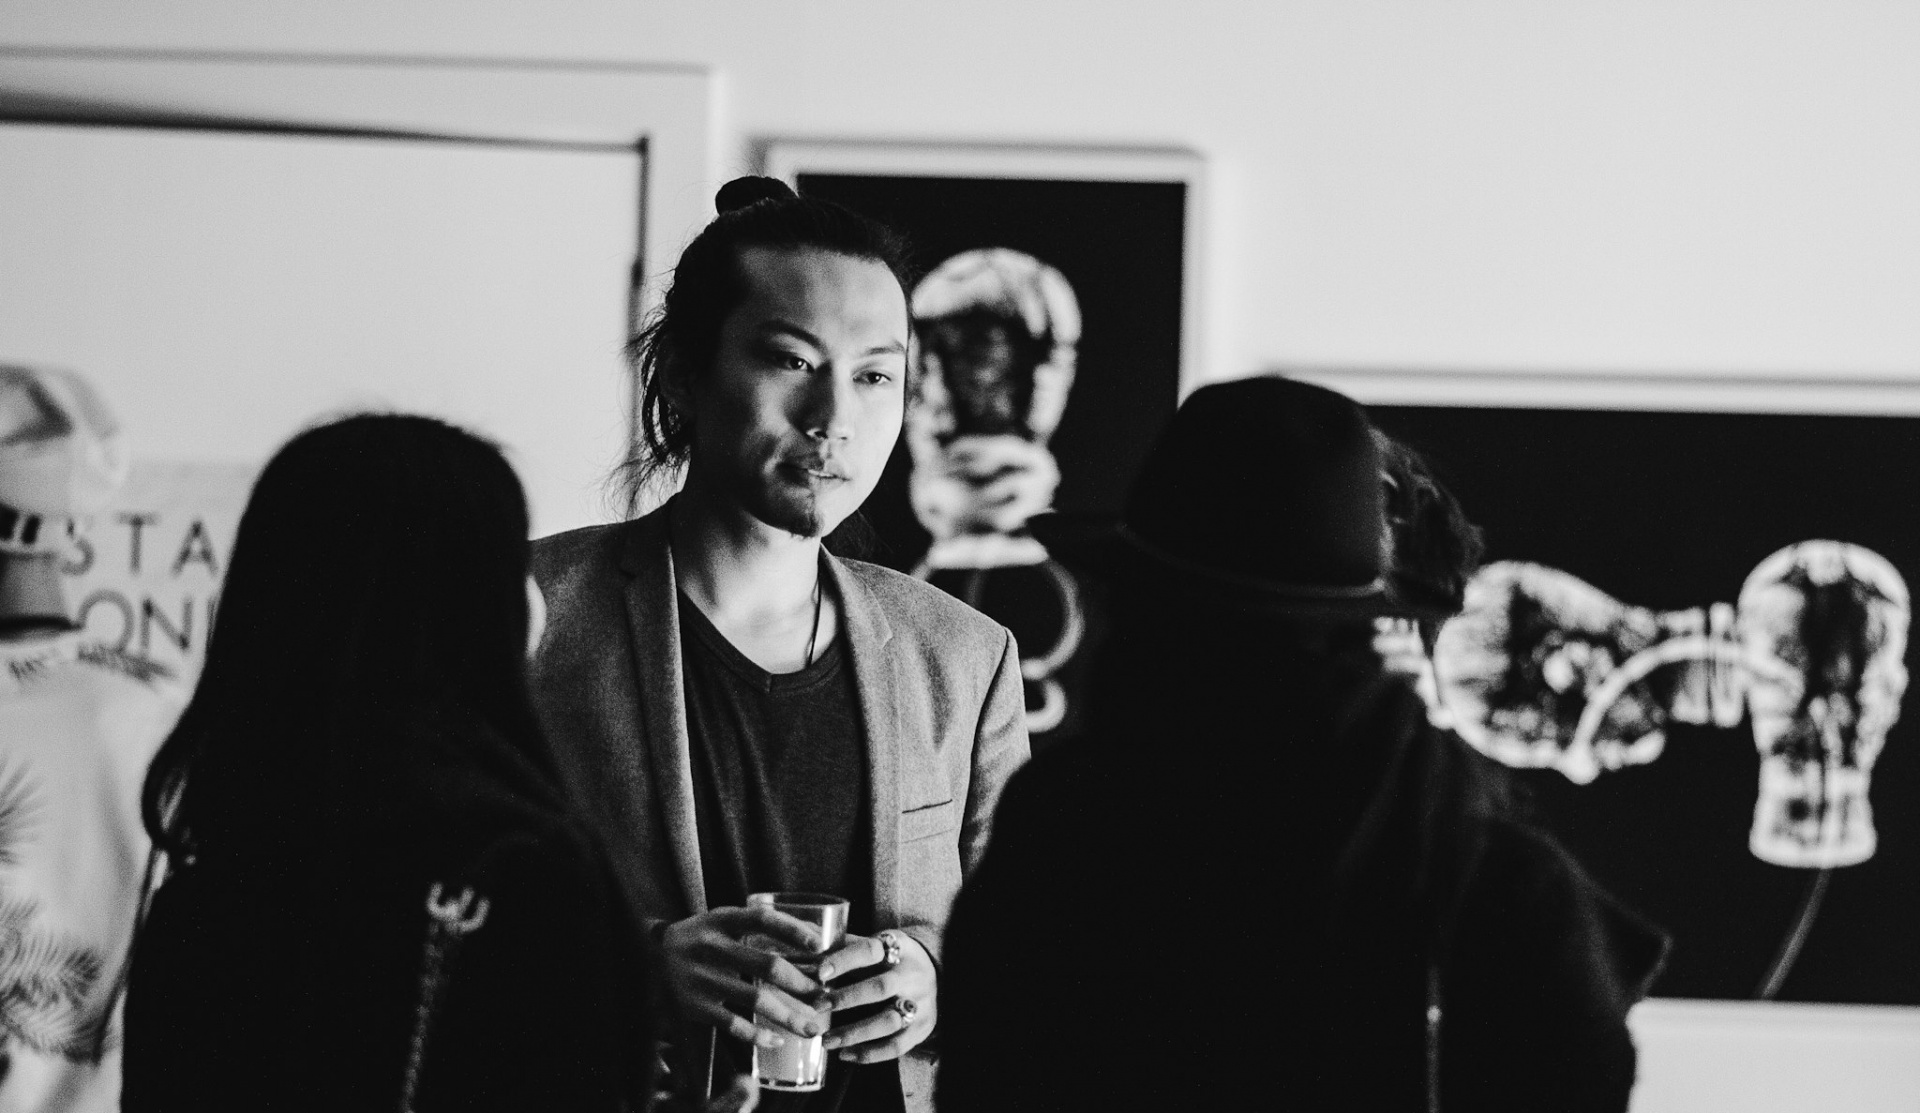 Black and white photograph of the Shoreditch Fashion Show- pictured is a man in a blazer. Graphic design by Barefaced Studios, design agency based in Islington, North London.